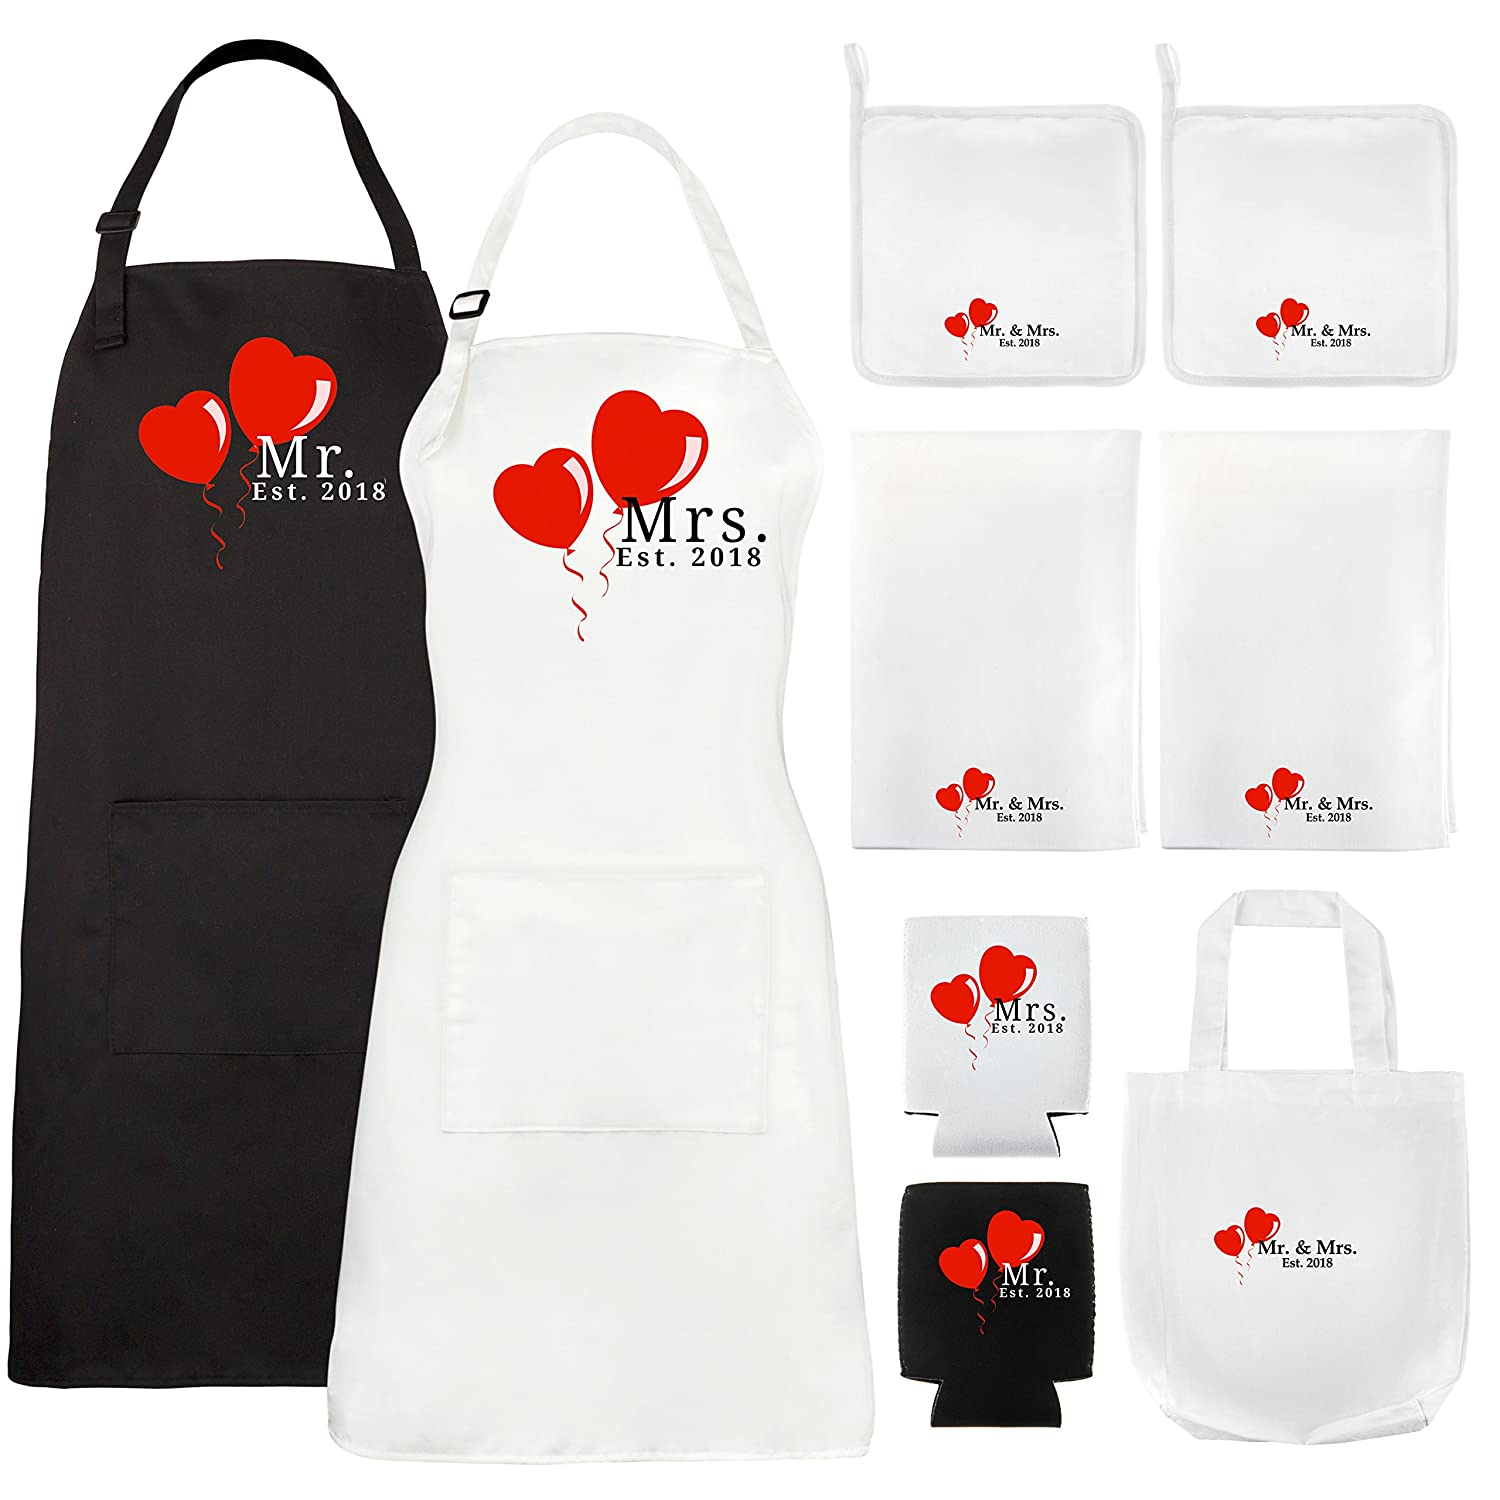 Mr. and Mrs. Aprons Est. 2018 Wedding Gift Set Bridal Shower Gifts for His Hers Couples By Let the Fun Begin